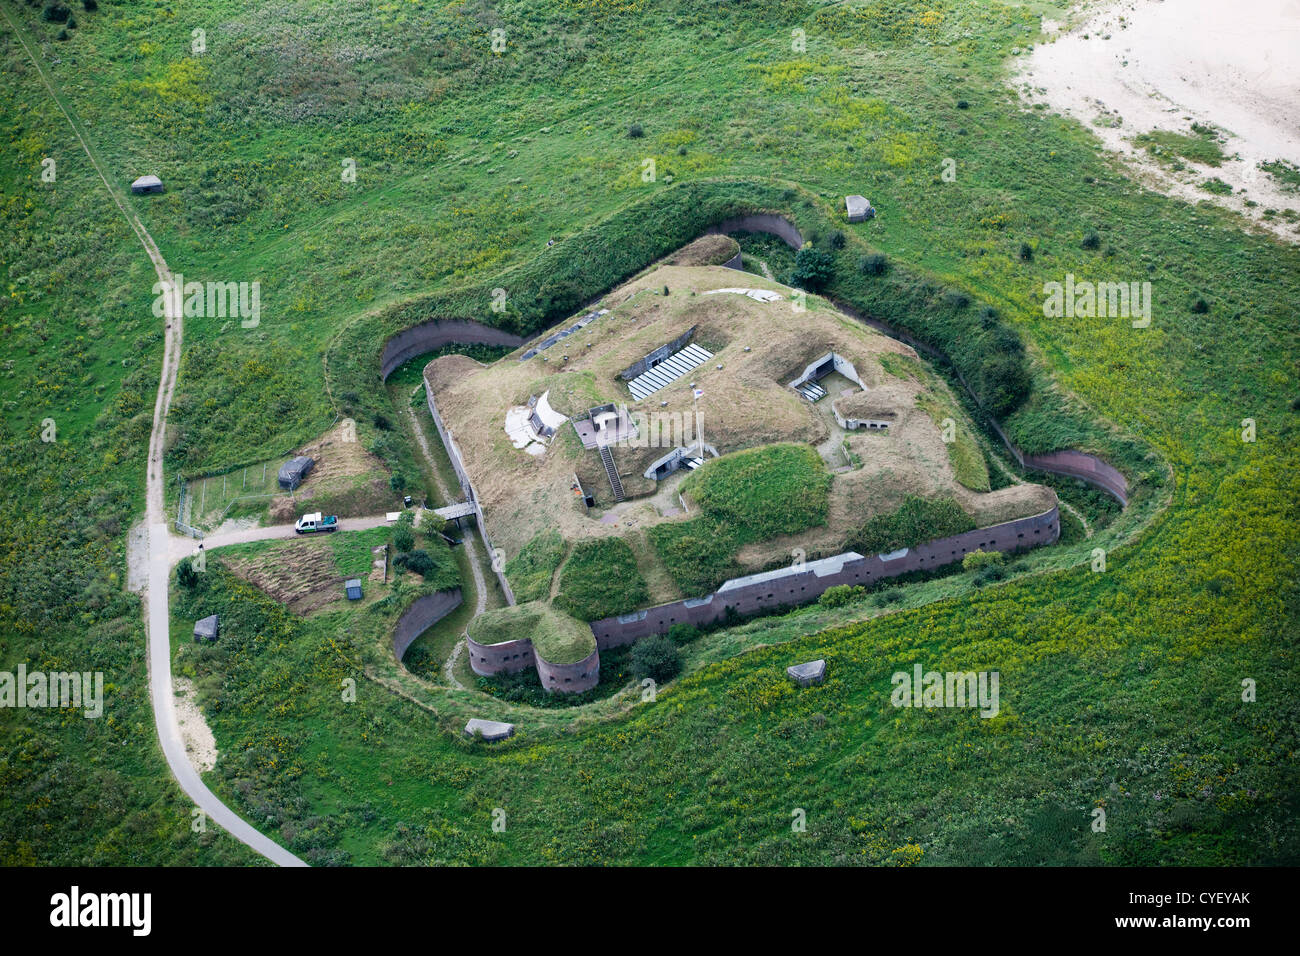 Fort Pannerden was constructed between 1869 and 1871 to serve as part of the New Dutch Waterline. Aerial. - Stock Image